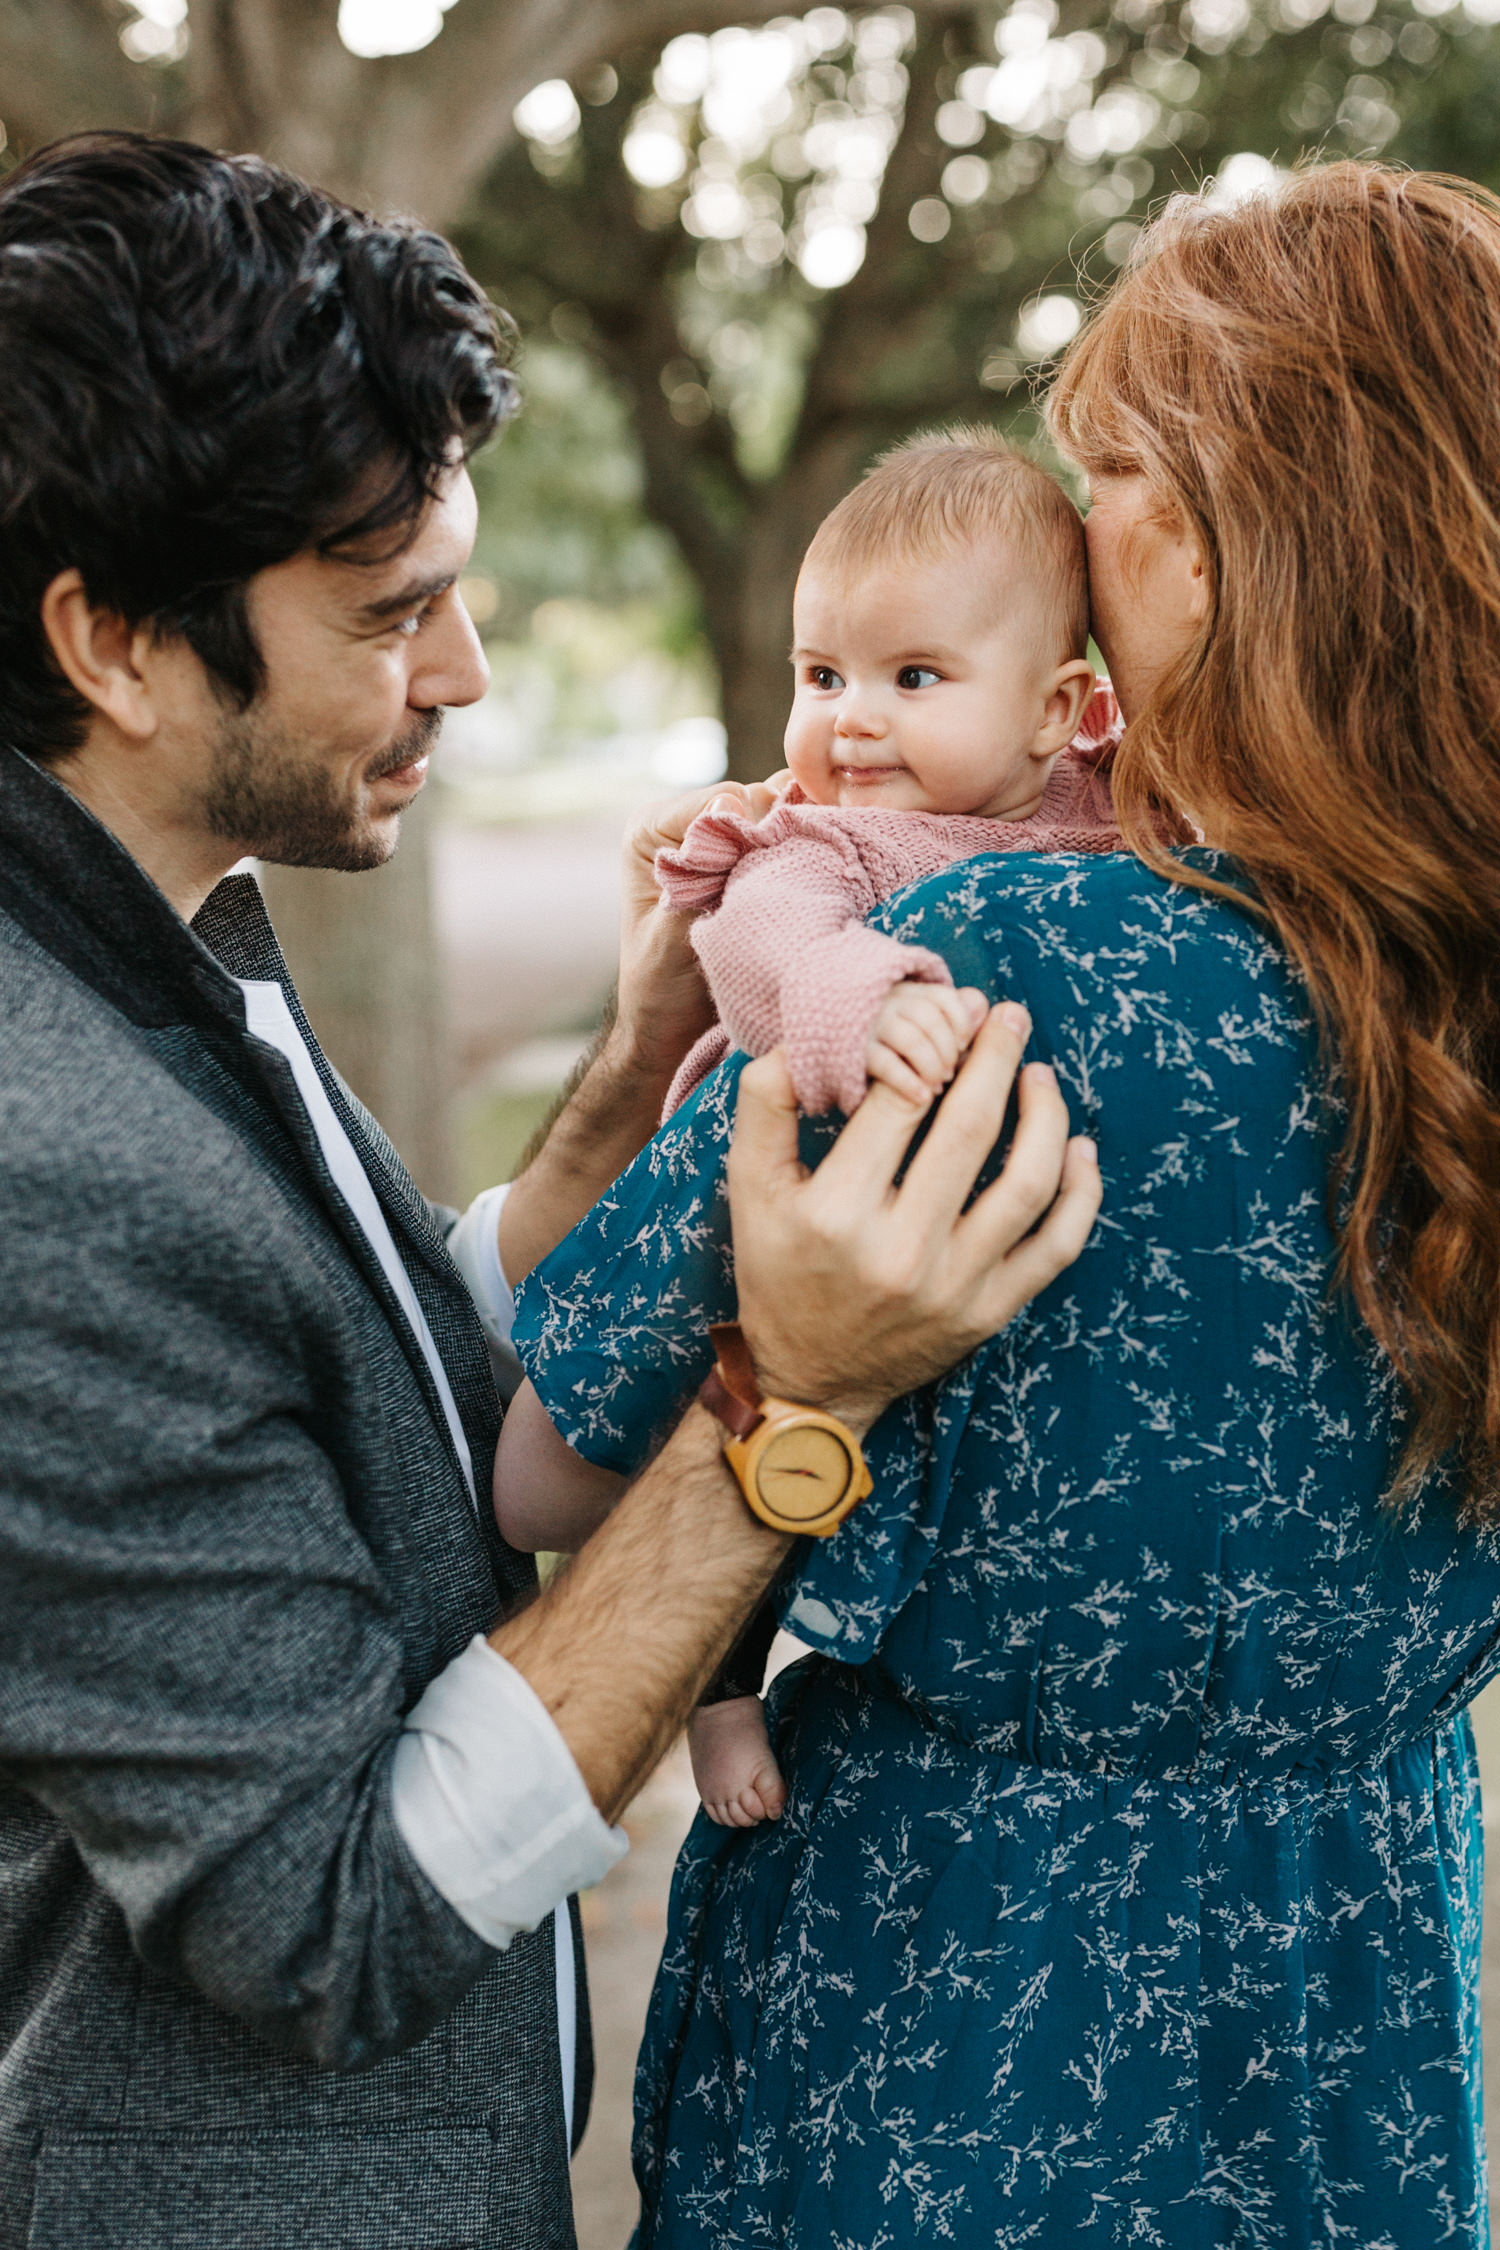 tampa-family-lifestyle-photographer-candid-natural-5